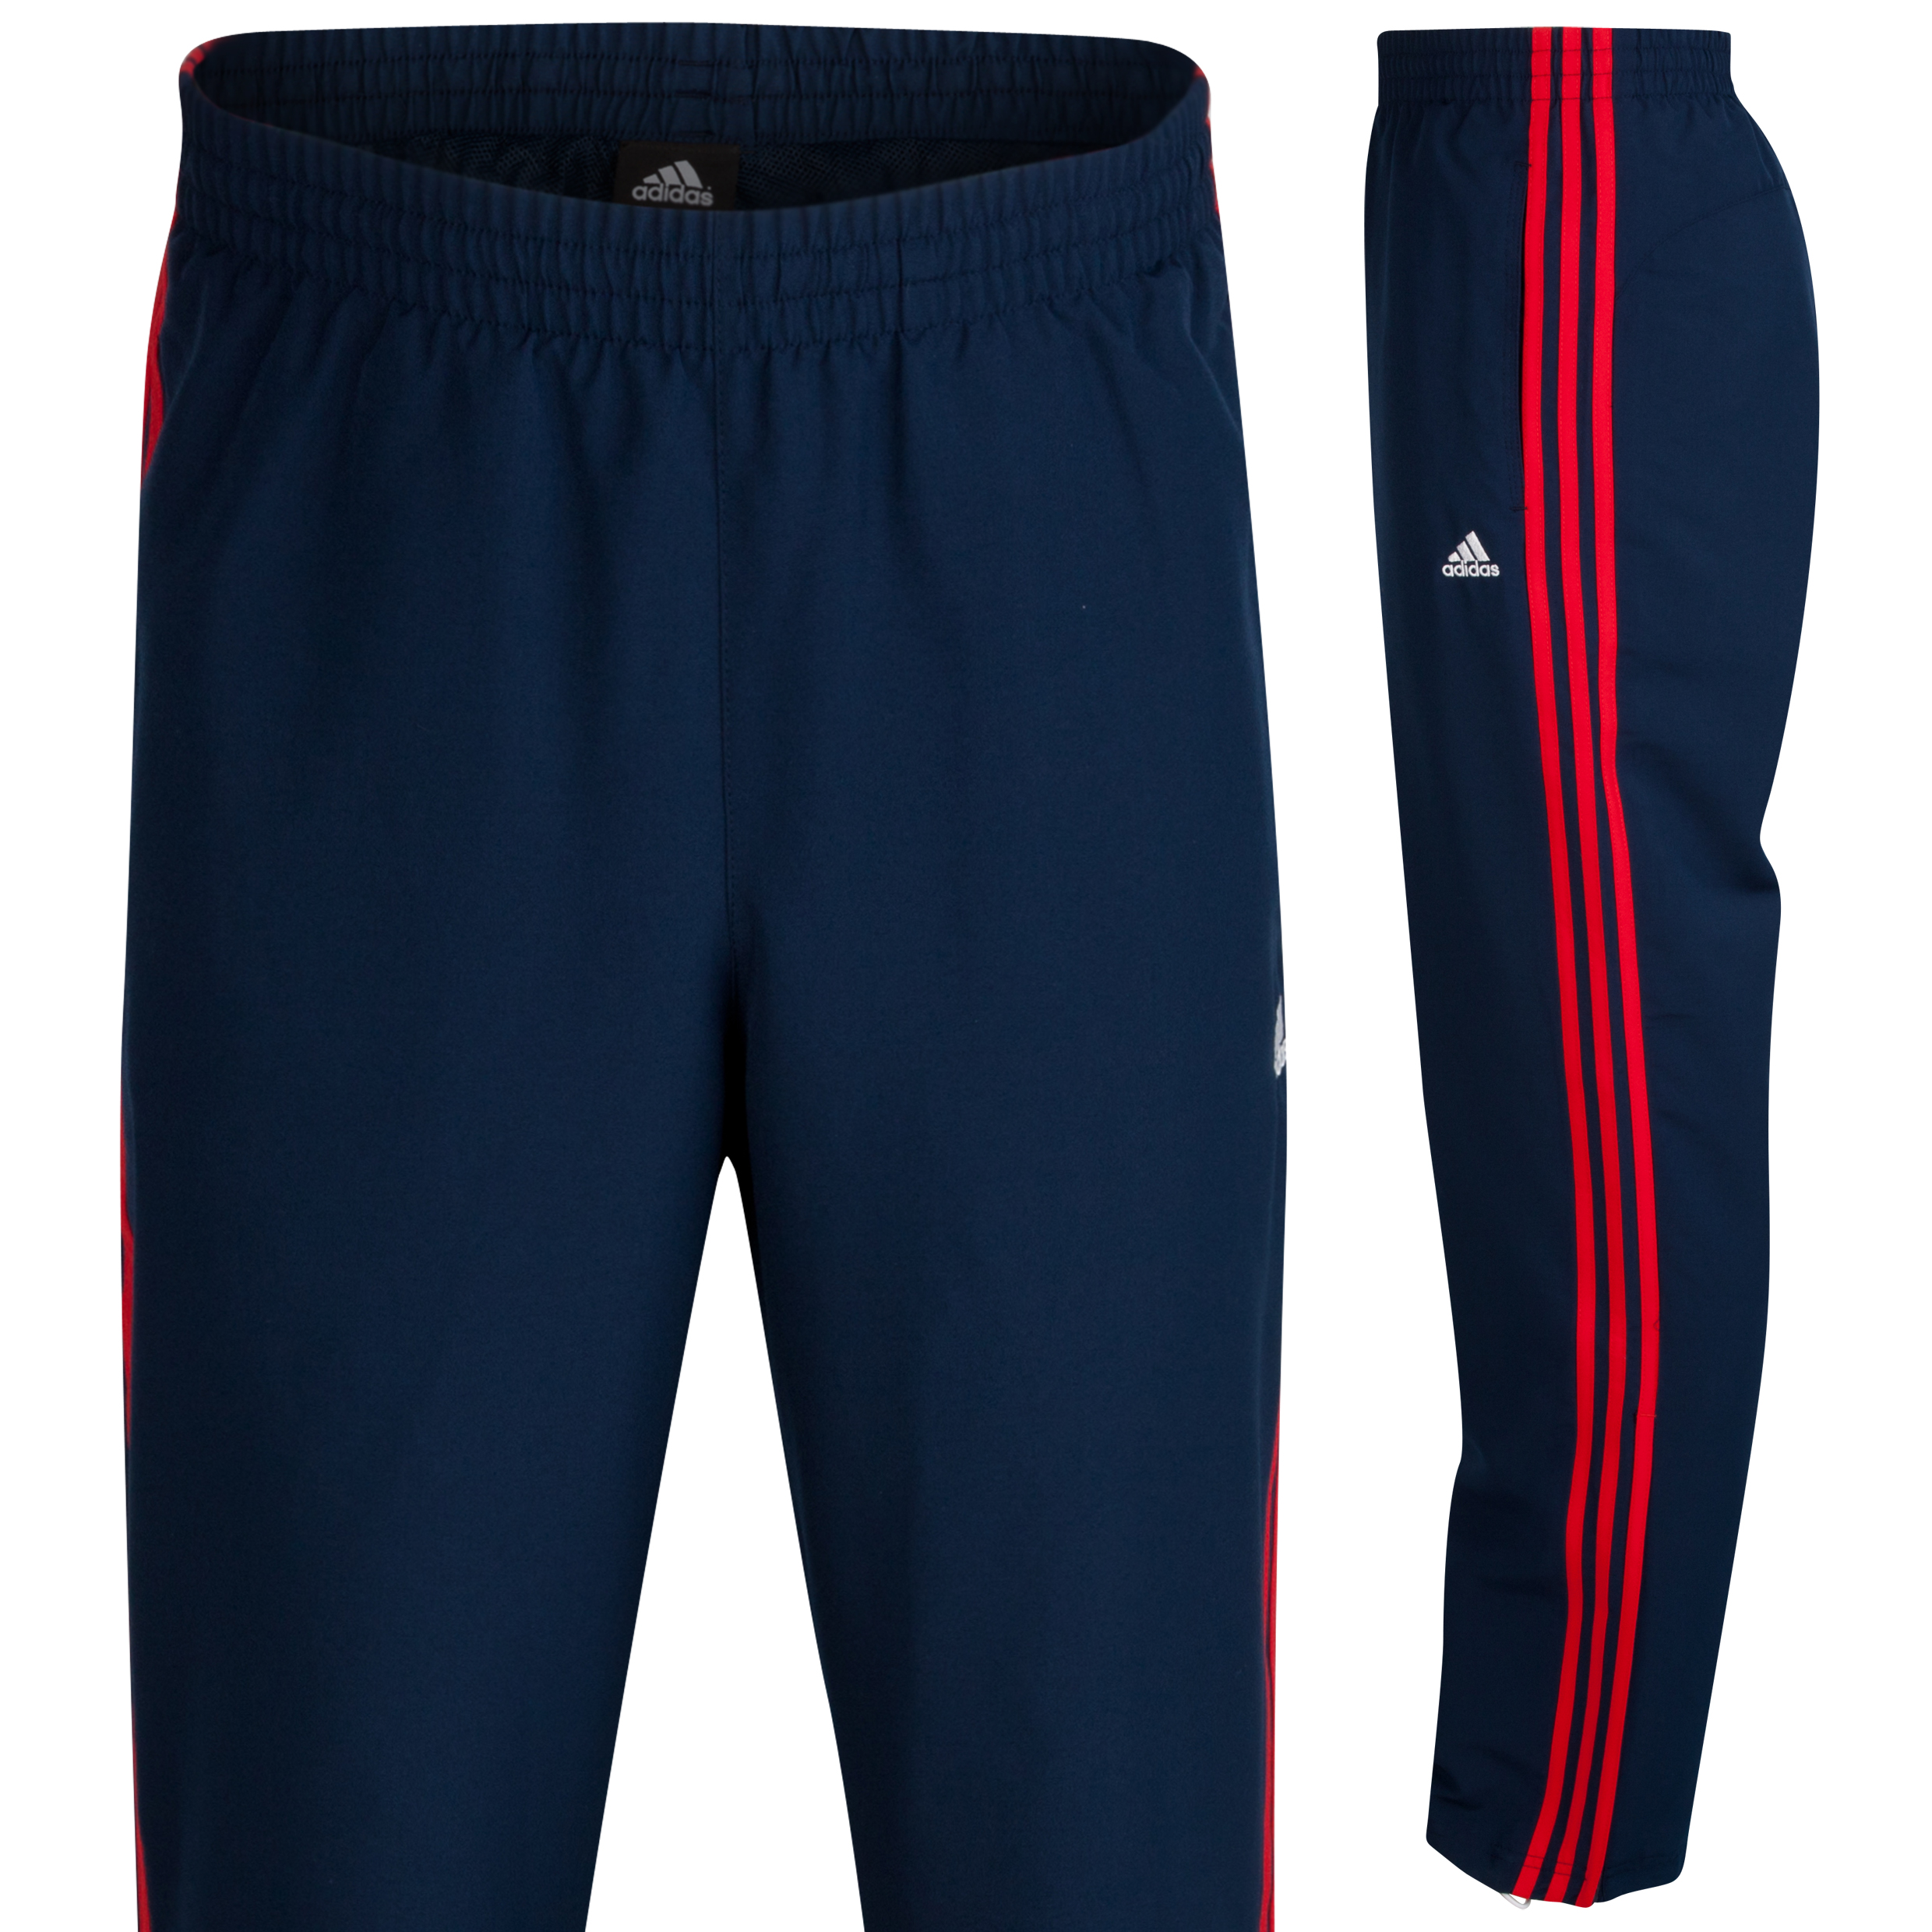 adidas Essentials 3 Stripe Woven Open Hem Pant - Collegiate Navy/Red S09